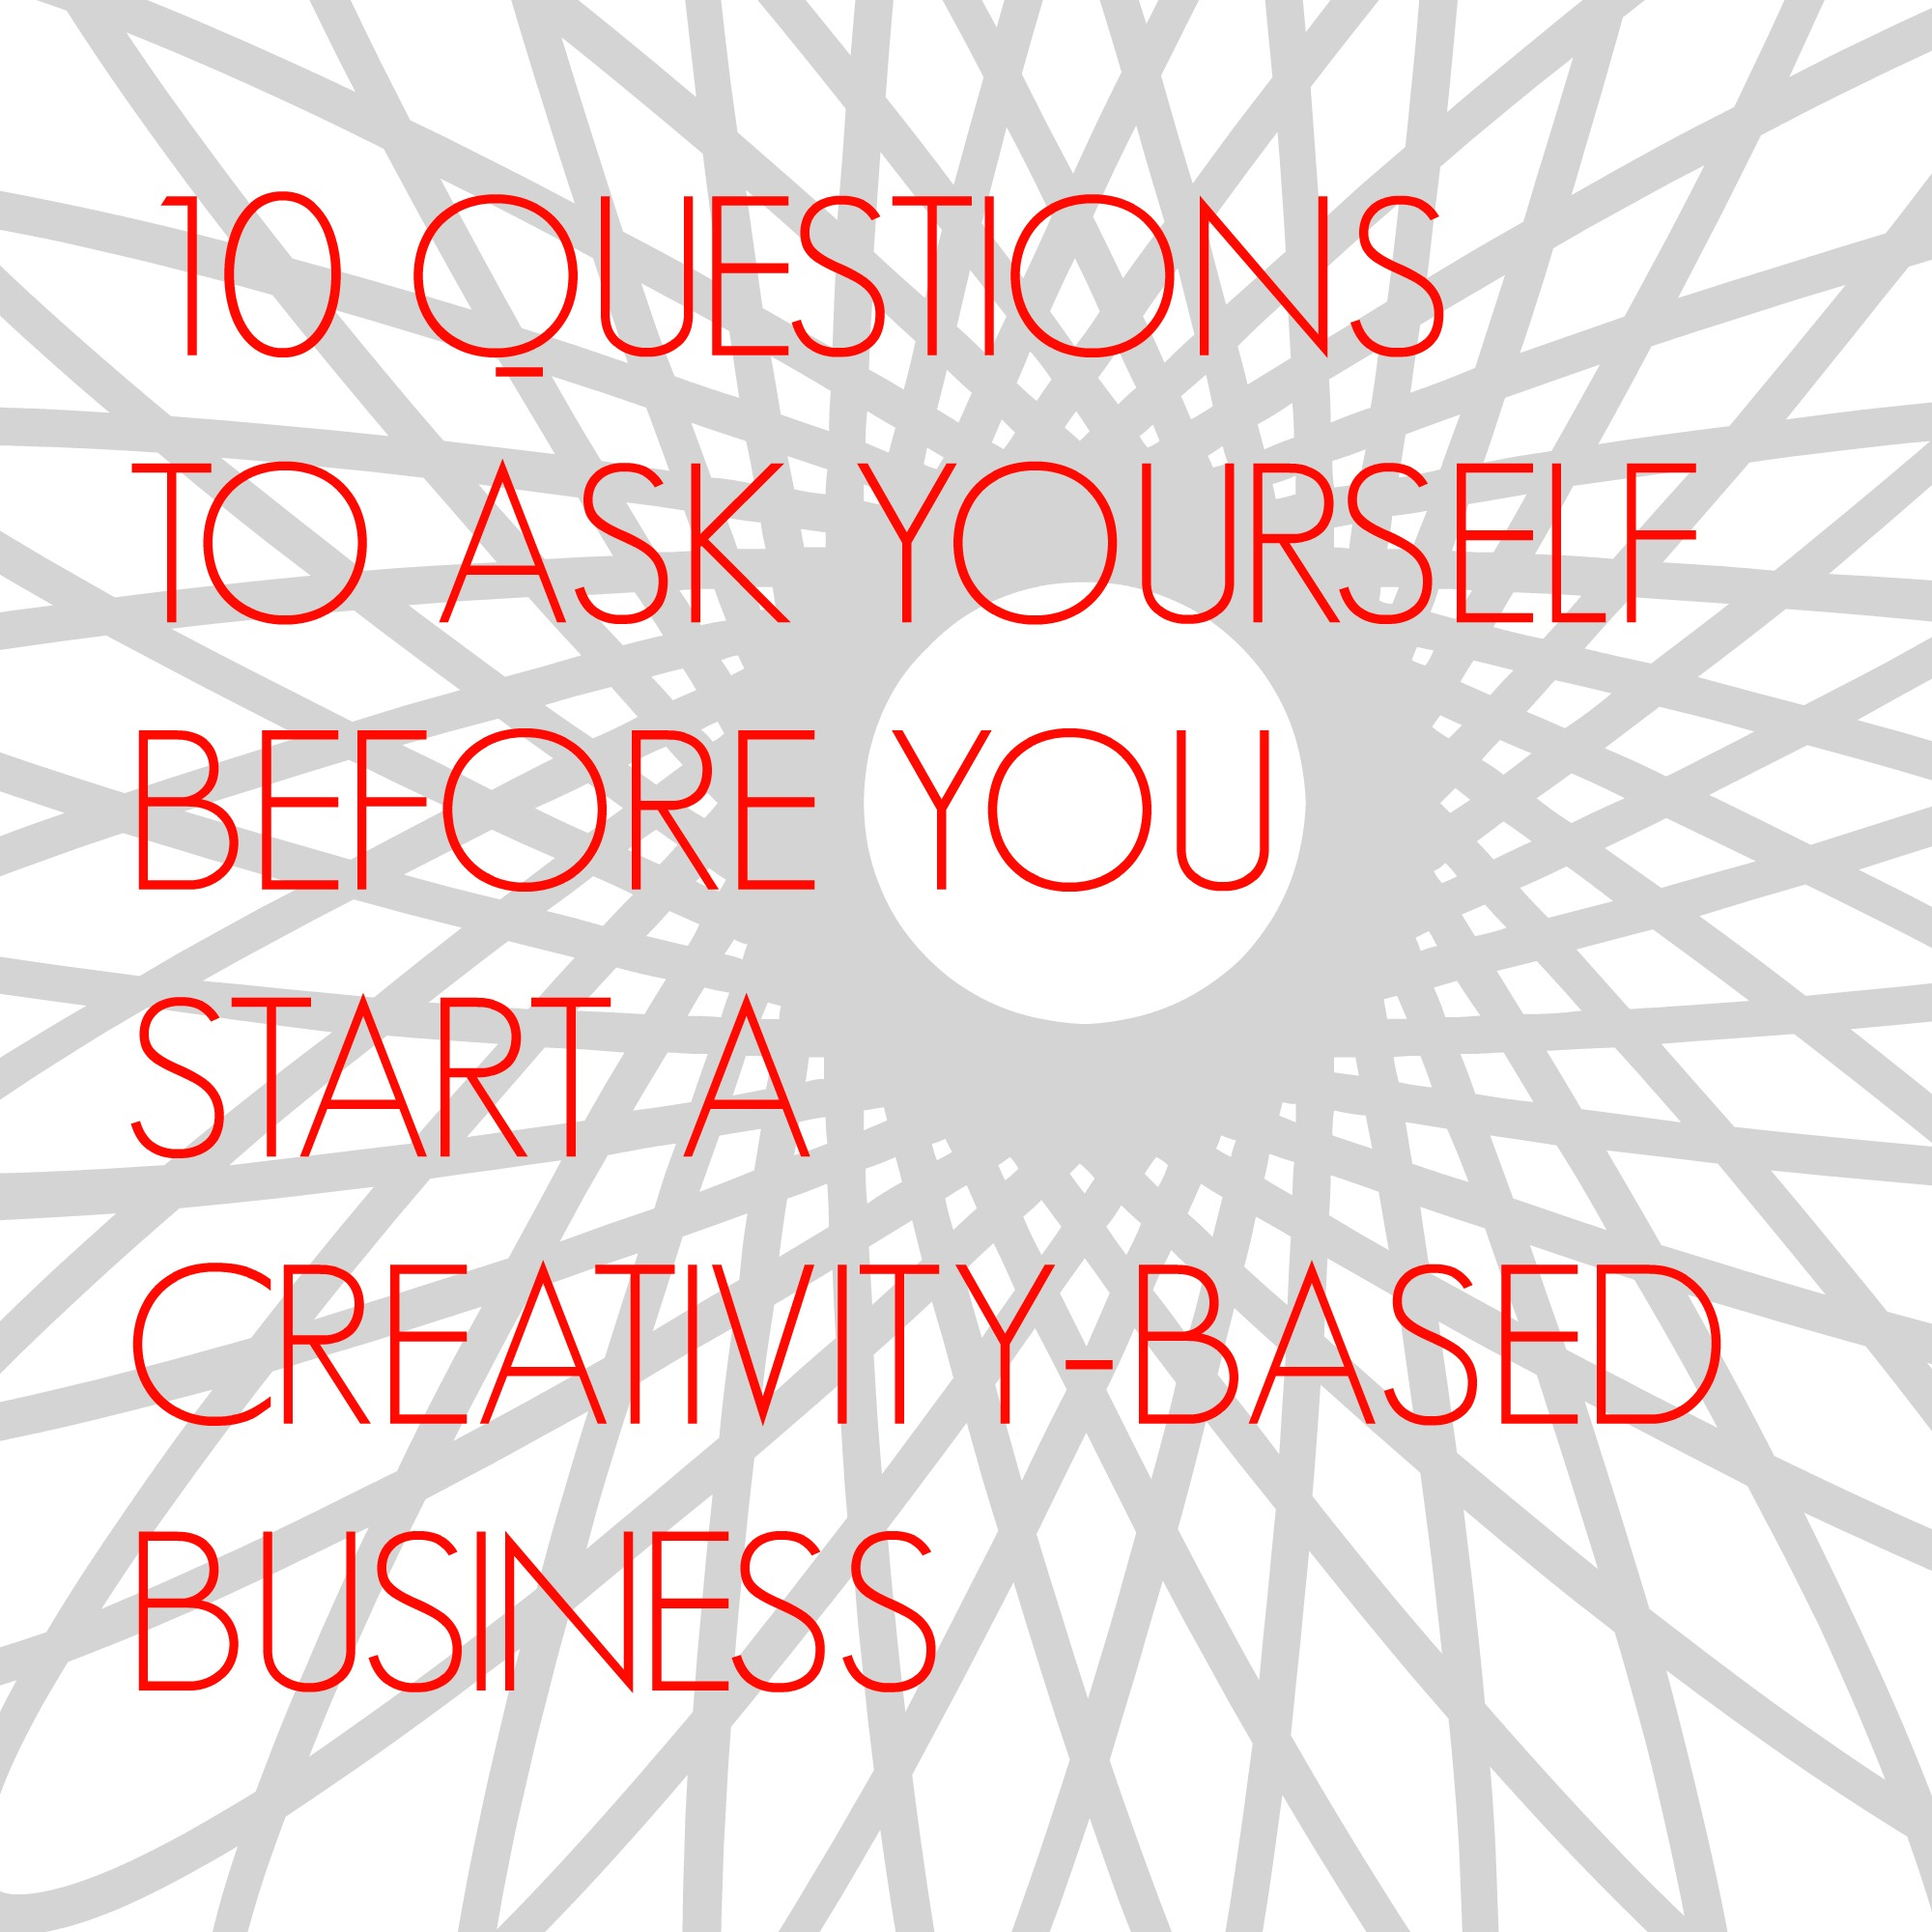 10-QUESTIONS-BUSINESS.jpg